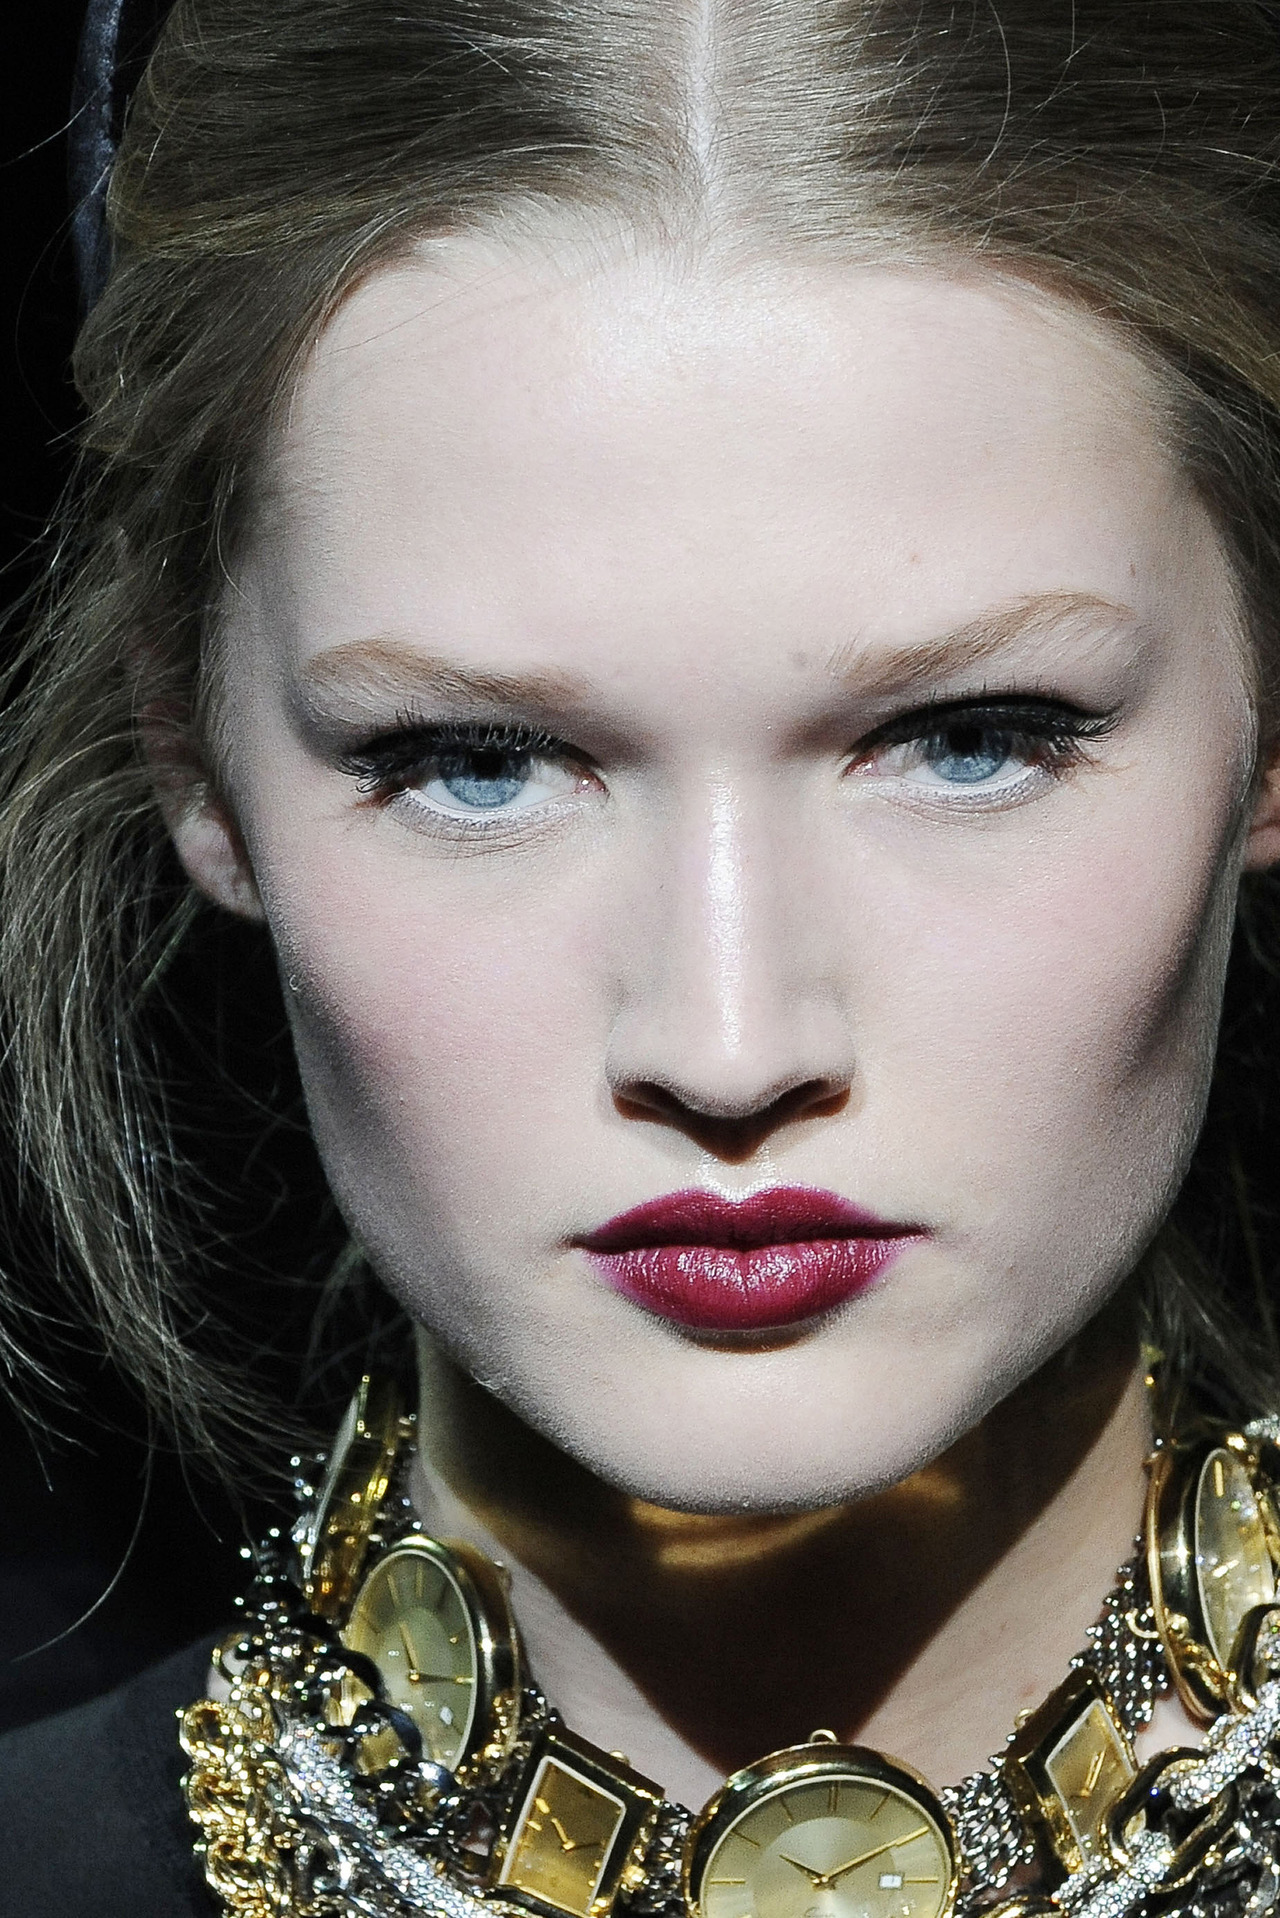 modfels:  Toni Garrn at Dolce & Gabbana Fall 2009